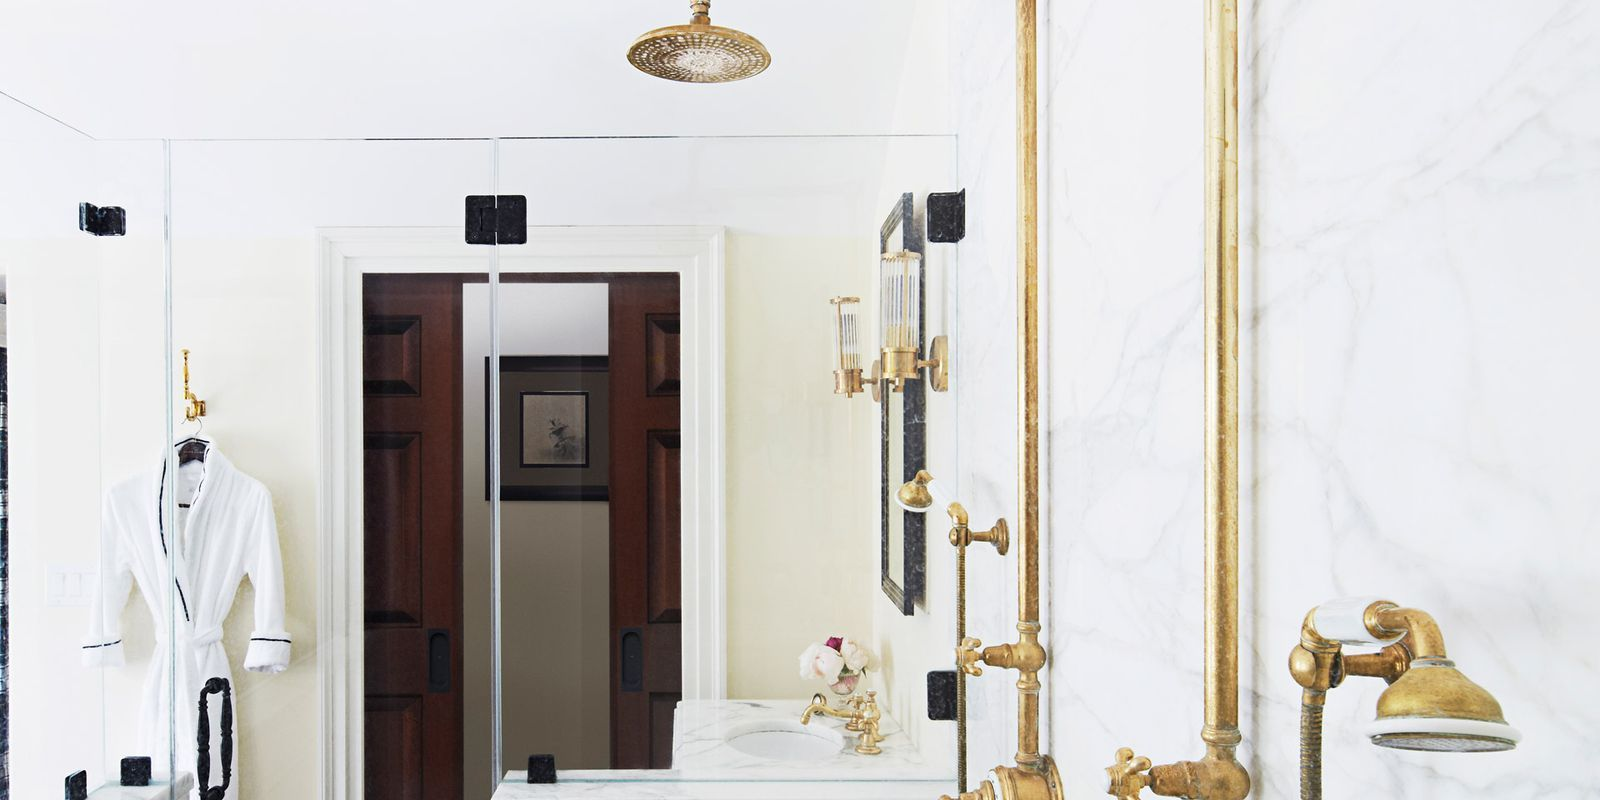 Get the Look: A Bathroom Inspired By the Gilded Age